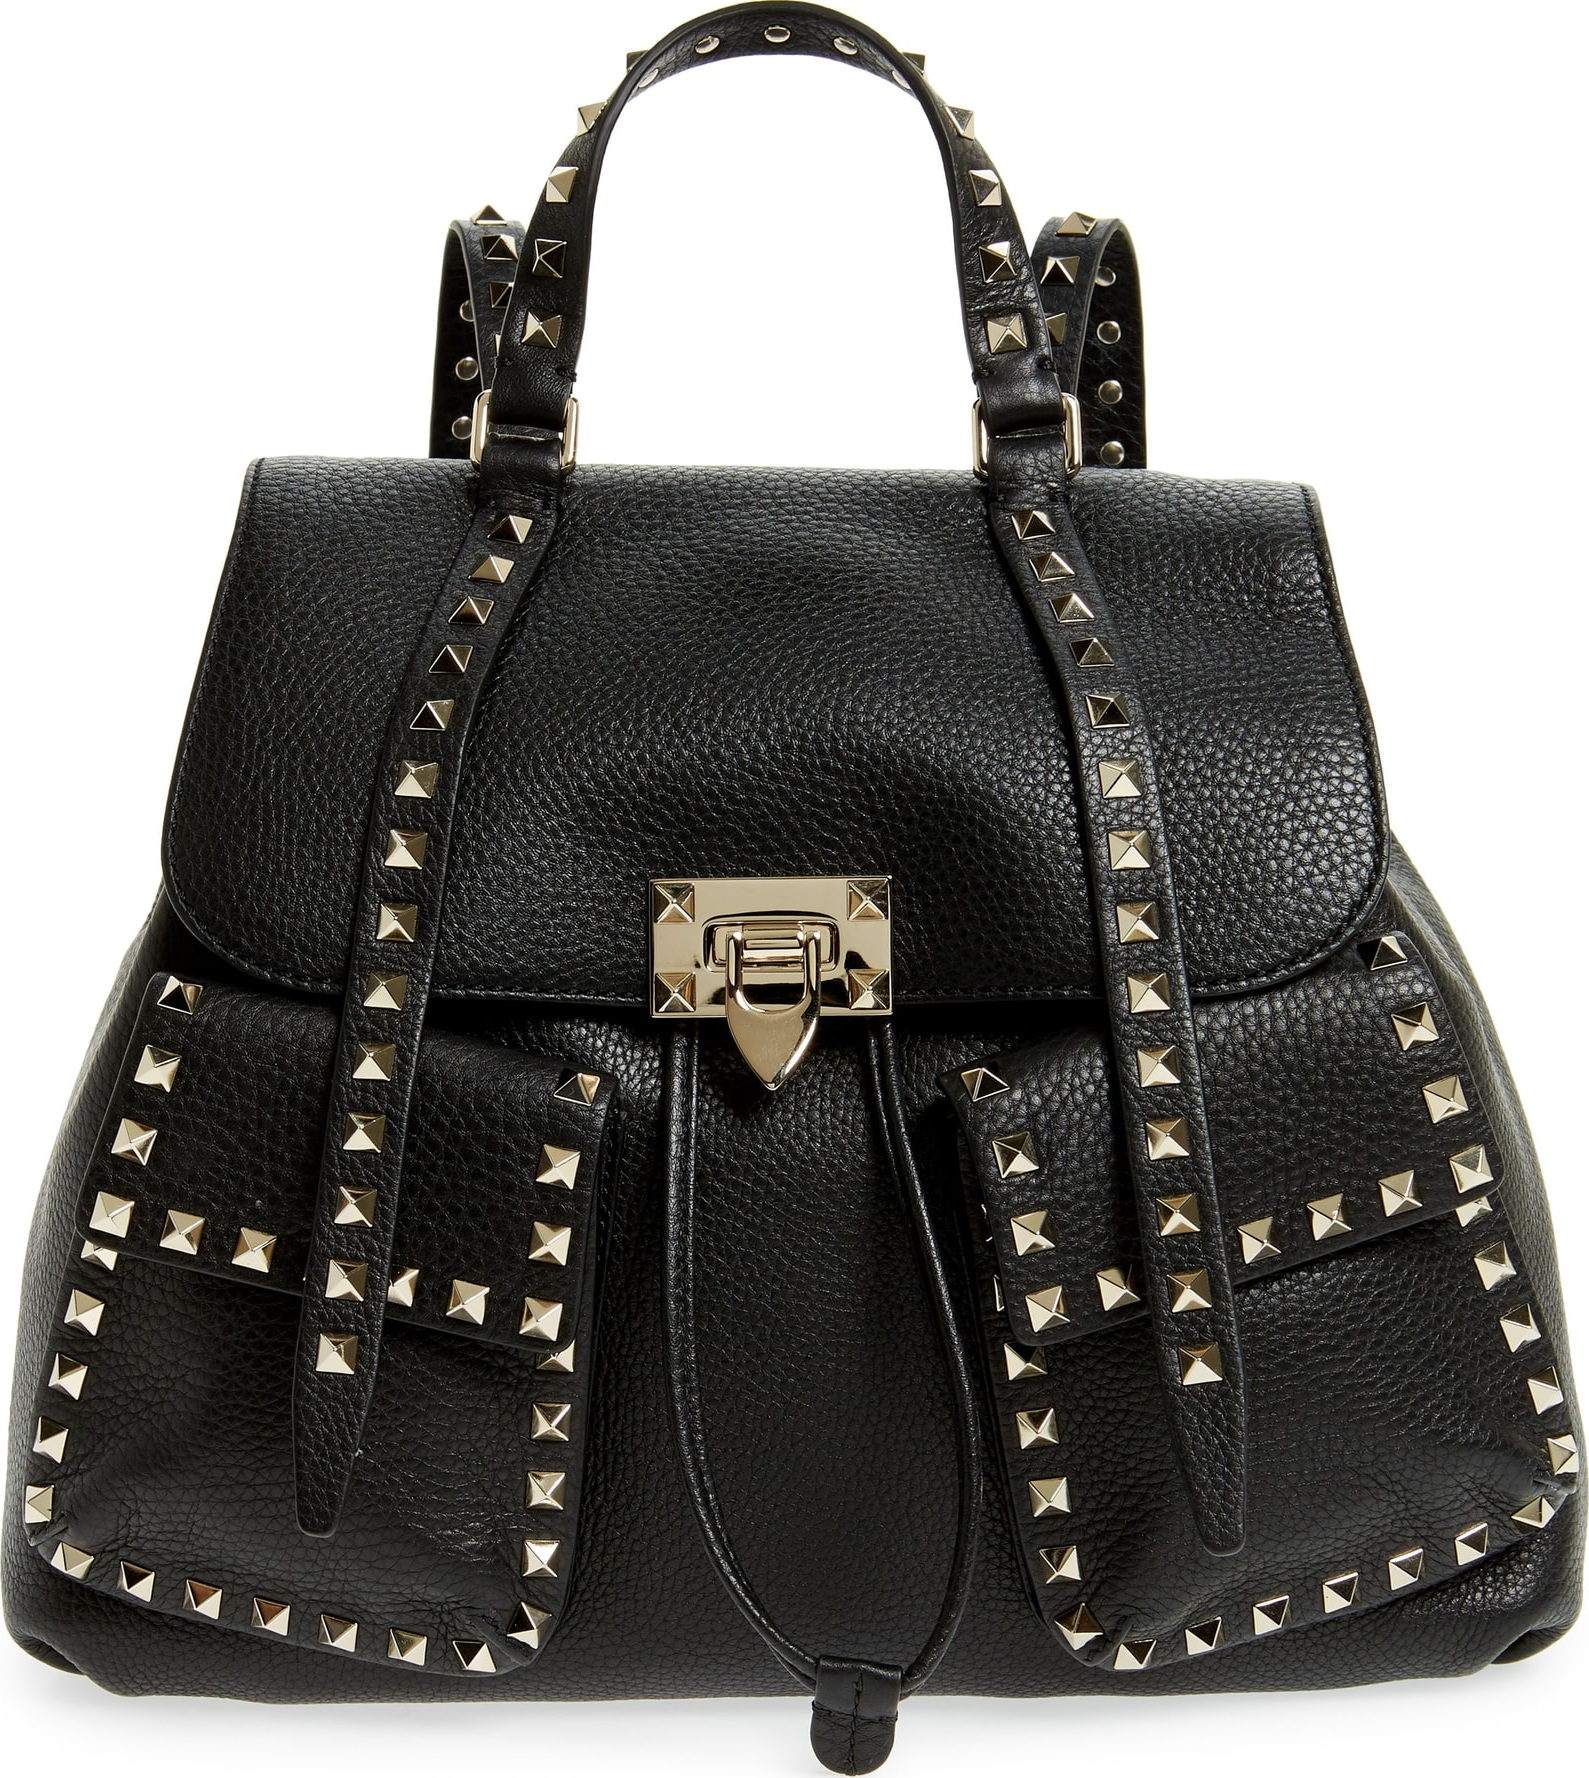 901e57b3a4a Valentino Studded Leather Backpack- Fenix Toulouse Handball